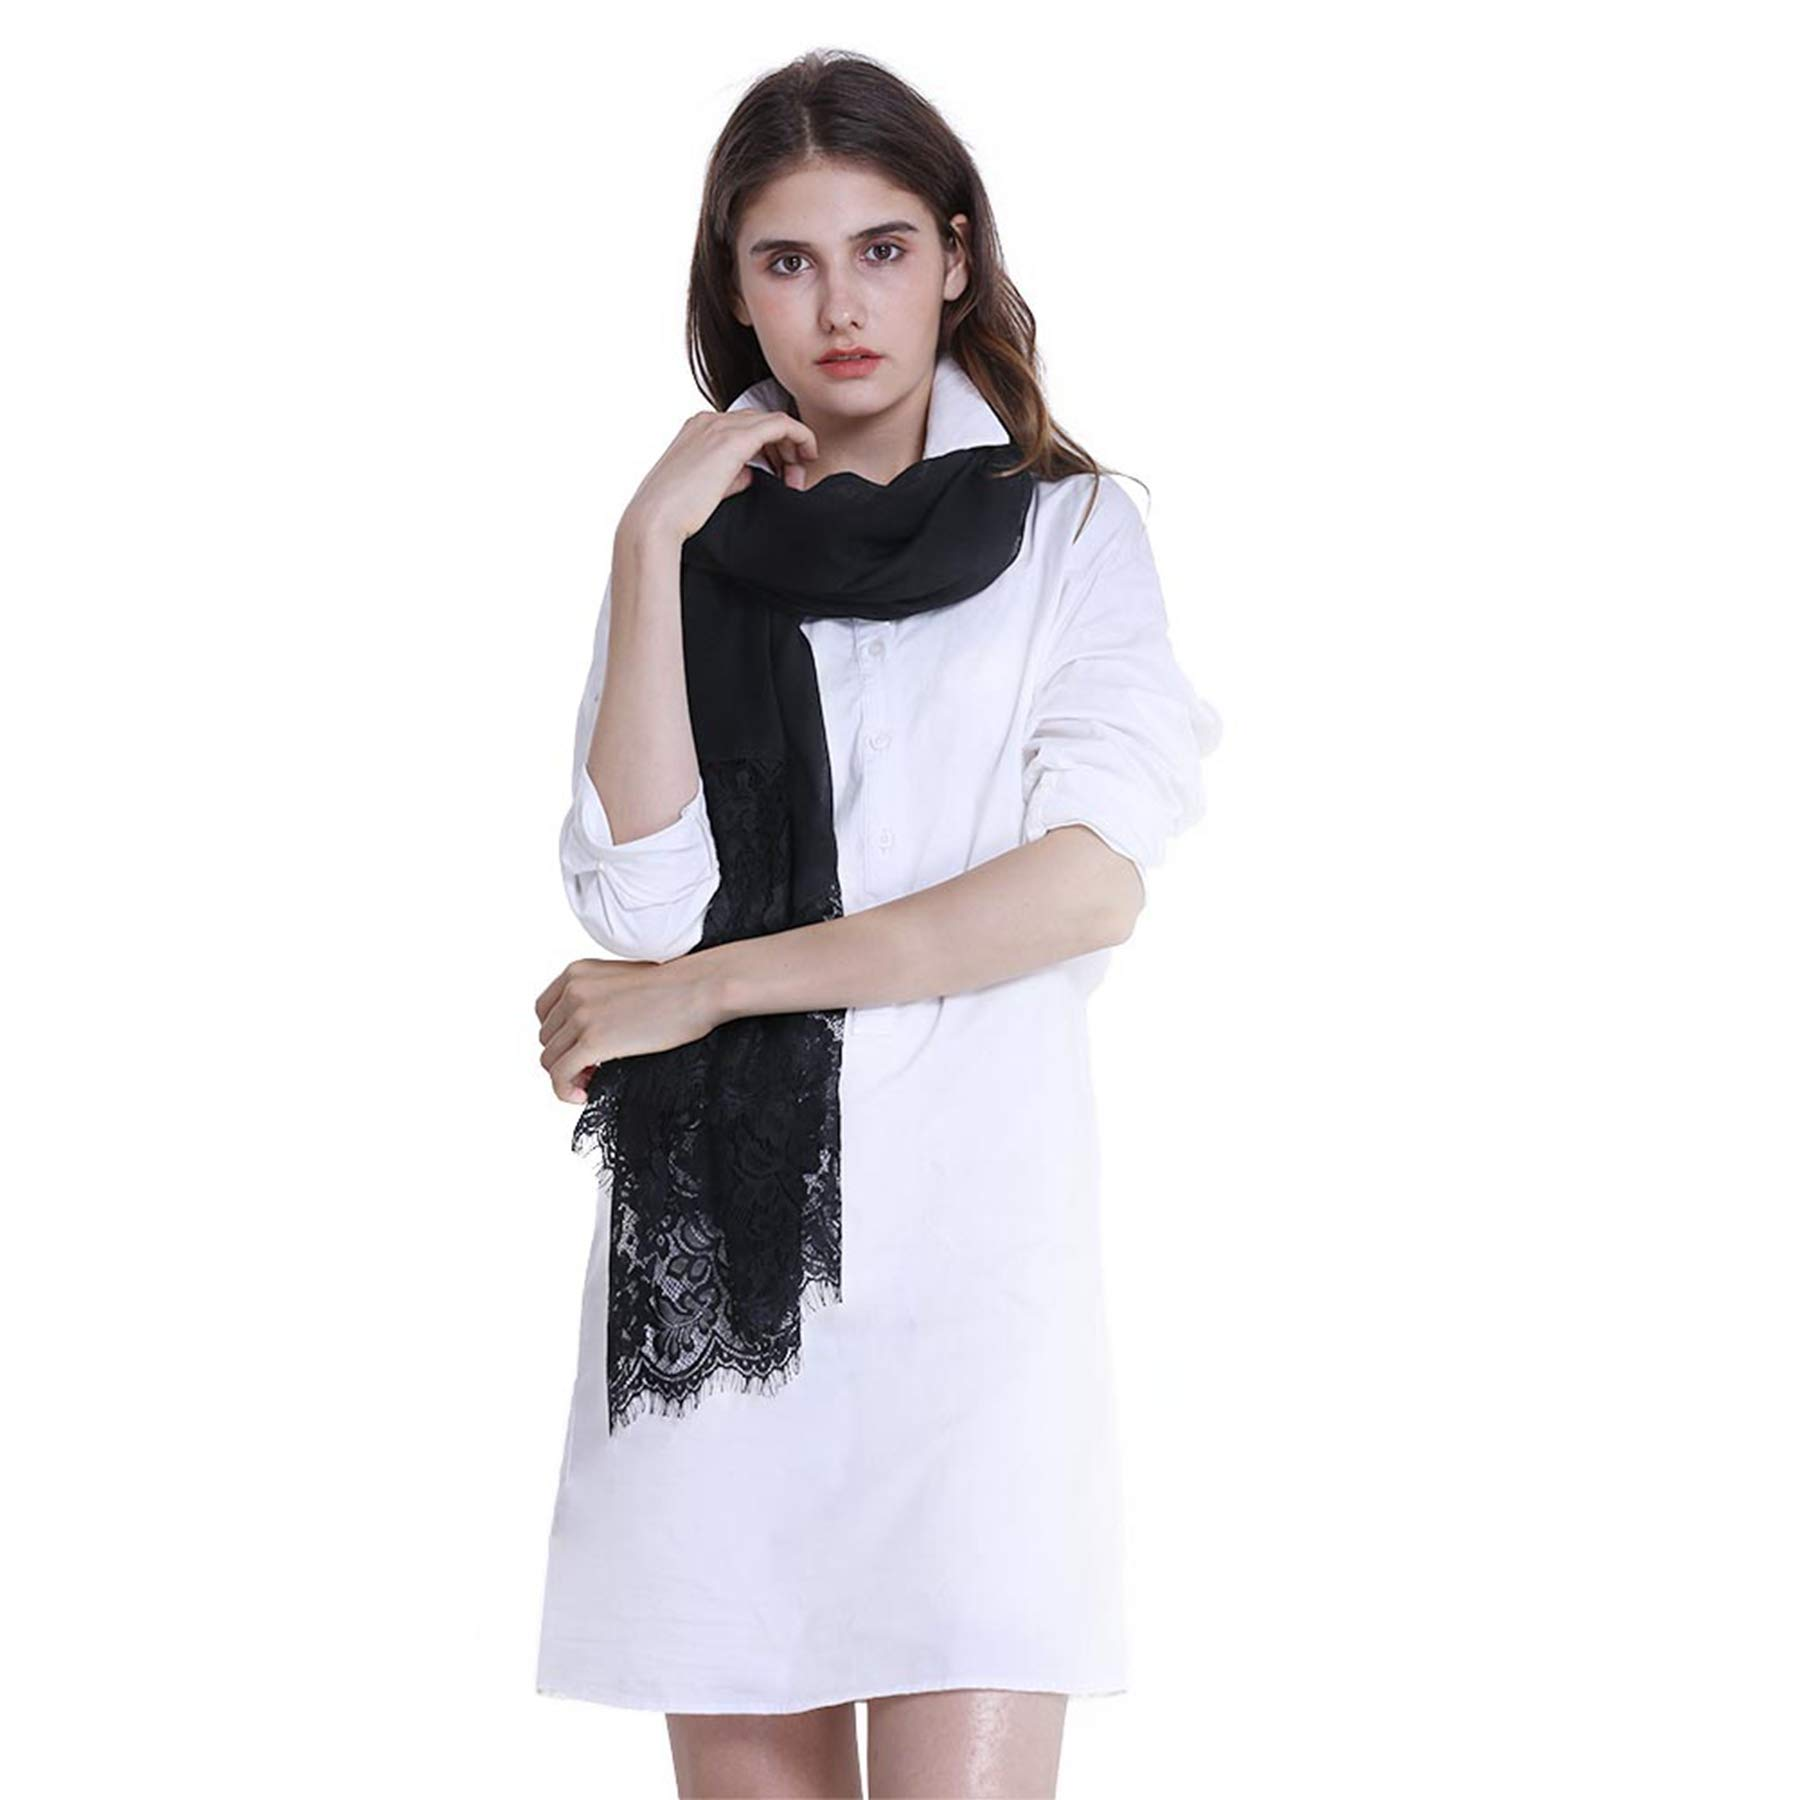 Women Fashion Scarf Wrap Shawl,RiscaWin Autumn Soft Lightweight Lace Scarves Wrap Warm Scarf(Black) by RiscaWin (Image #3)